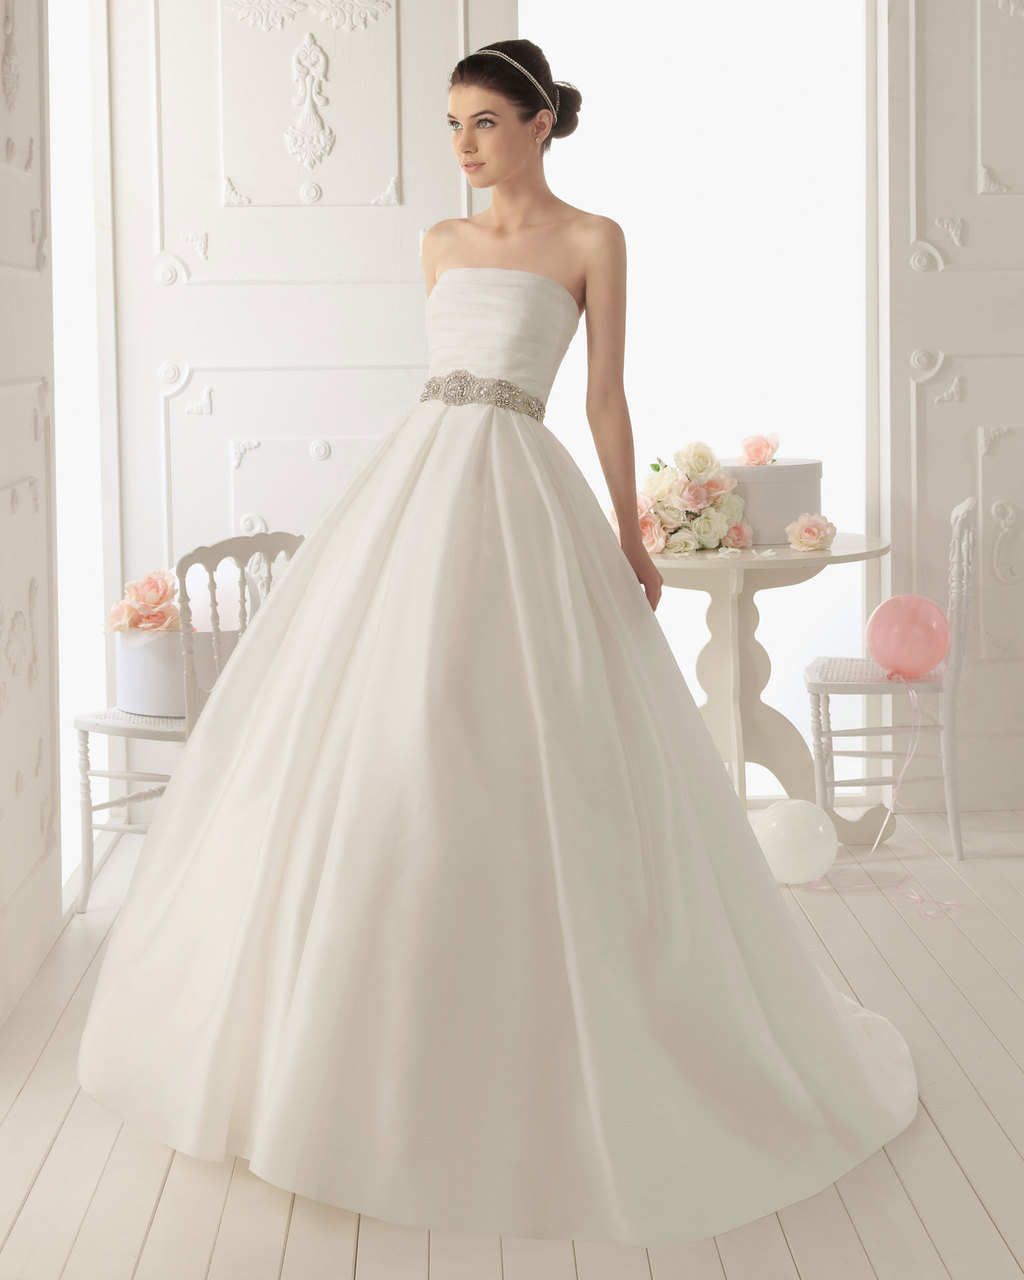 2013-wedding-dress-aire-barcelona-bridal-gowns-rima.full